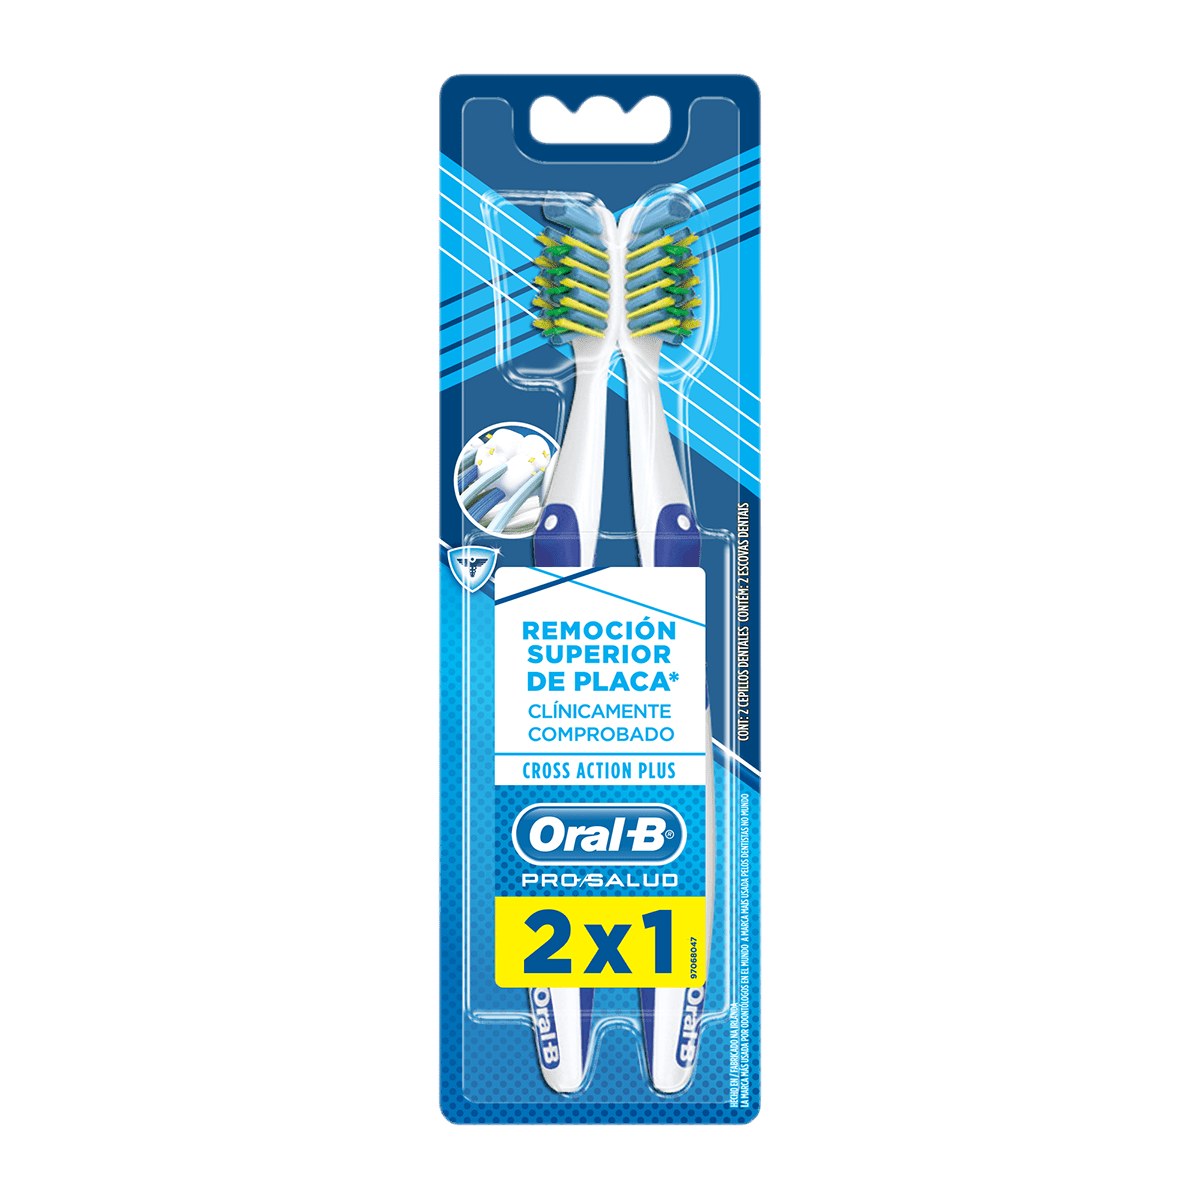 Cepillo Dental Oral-B Cross Action Plus